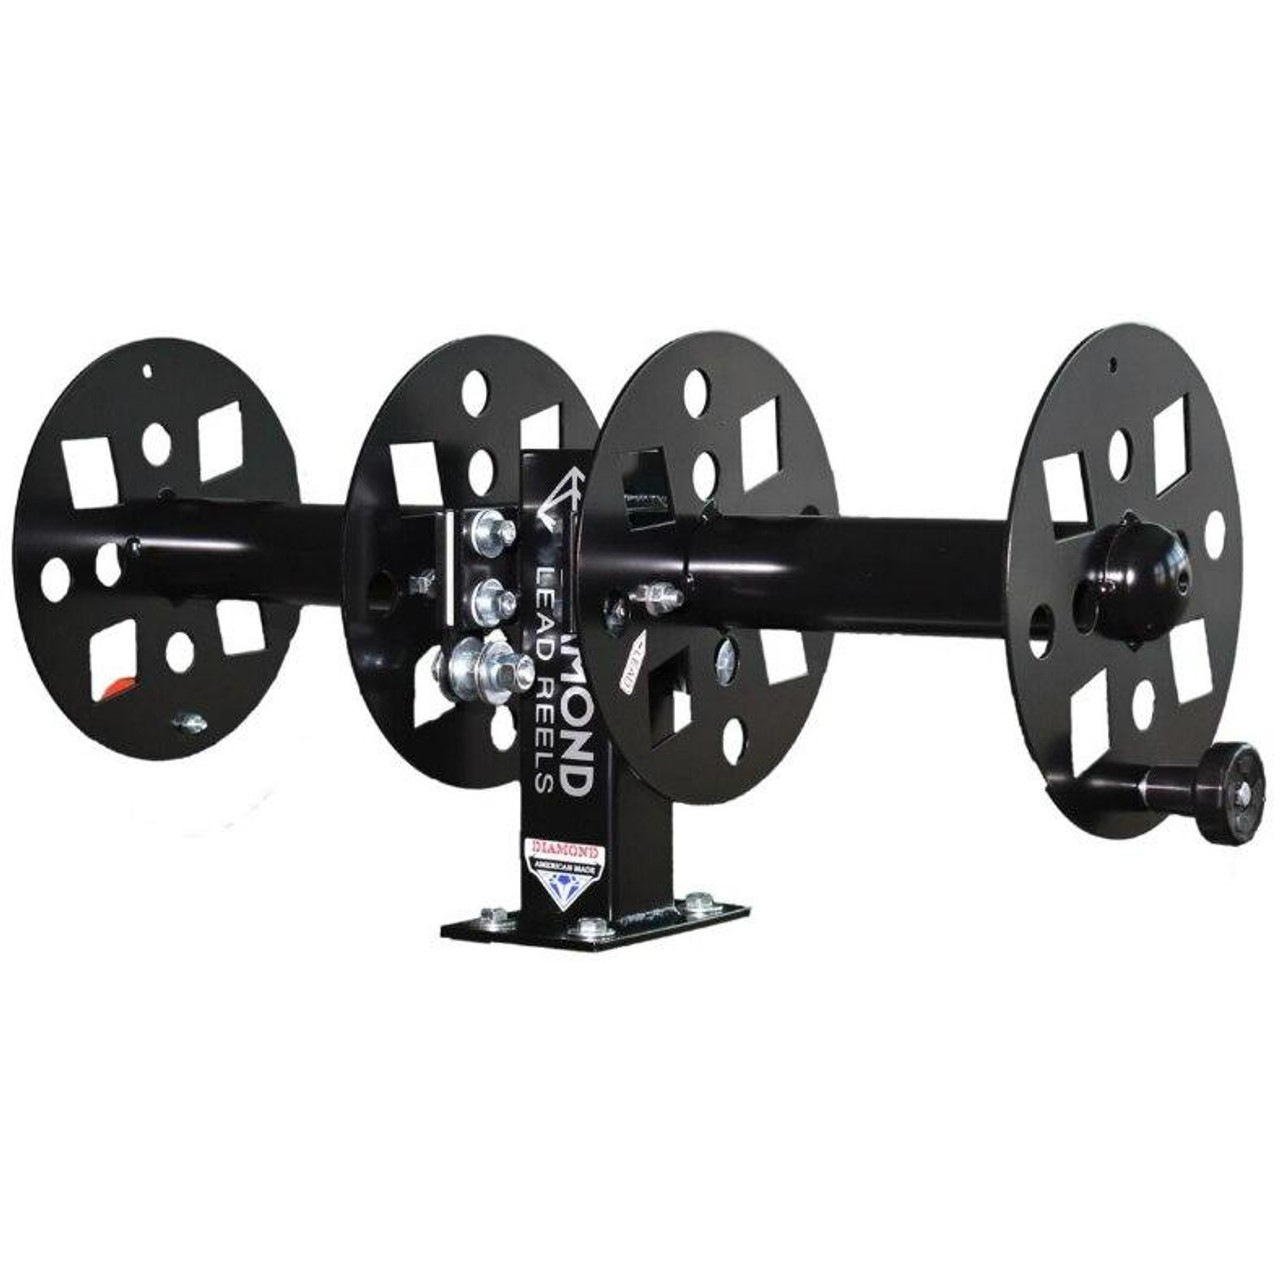 Diamond Lead Reels Heavy Duty 10 Side-By-Side Welding Lead Reel FBSS10BLK